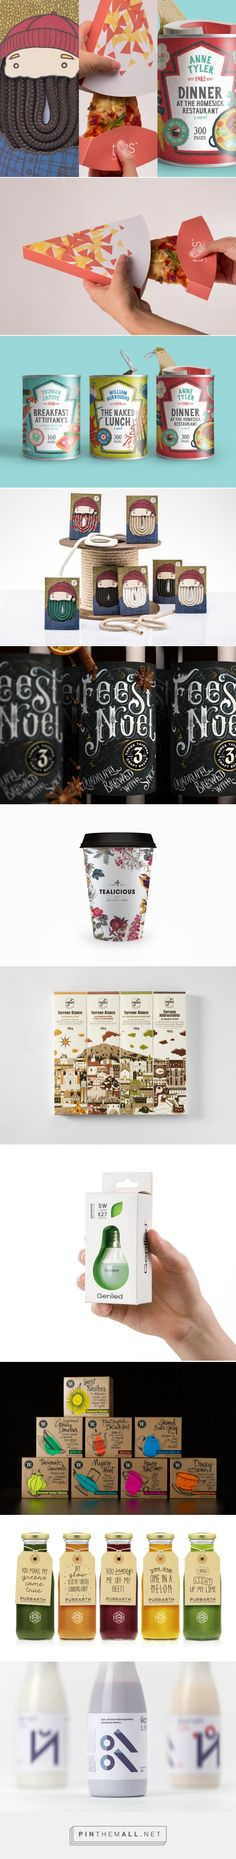 #‎Top10‬ ‪#‎Packaging #design #package #mix